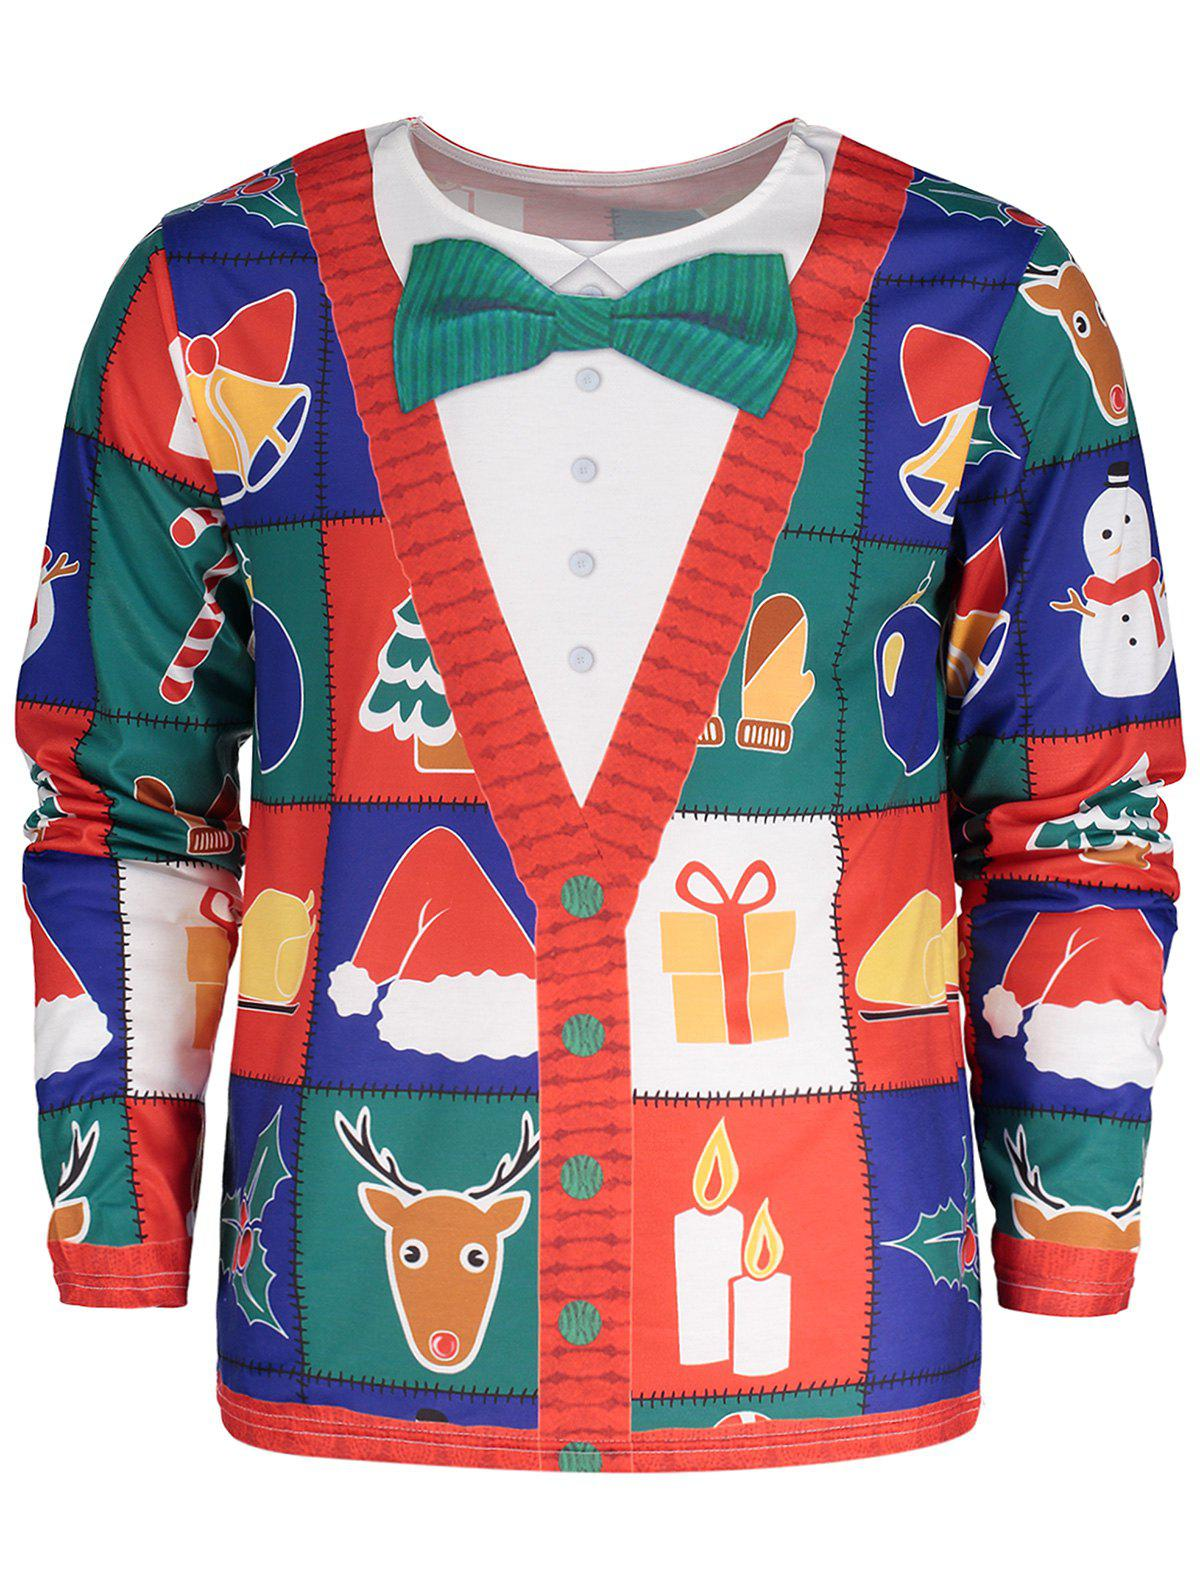 Bowknot Tie Cardigan Print Santa Christmas T-shirtMEN<br><br>Size: 2XL; Color: COLORMIX; Material: Polyester,Spandex; Sleeve Length: Full; Collar: Crew Neck; Style: Fashion; Pattern Type: Color Block,Print,Star; Season: Fall,Spring,Summer; Weight: 0.3200kg; Package Contents: 1 x T-shirt;